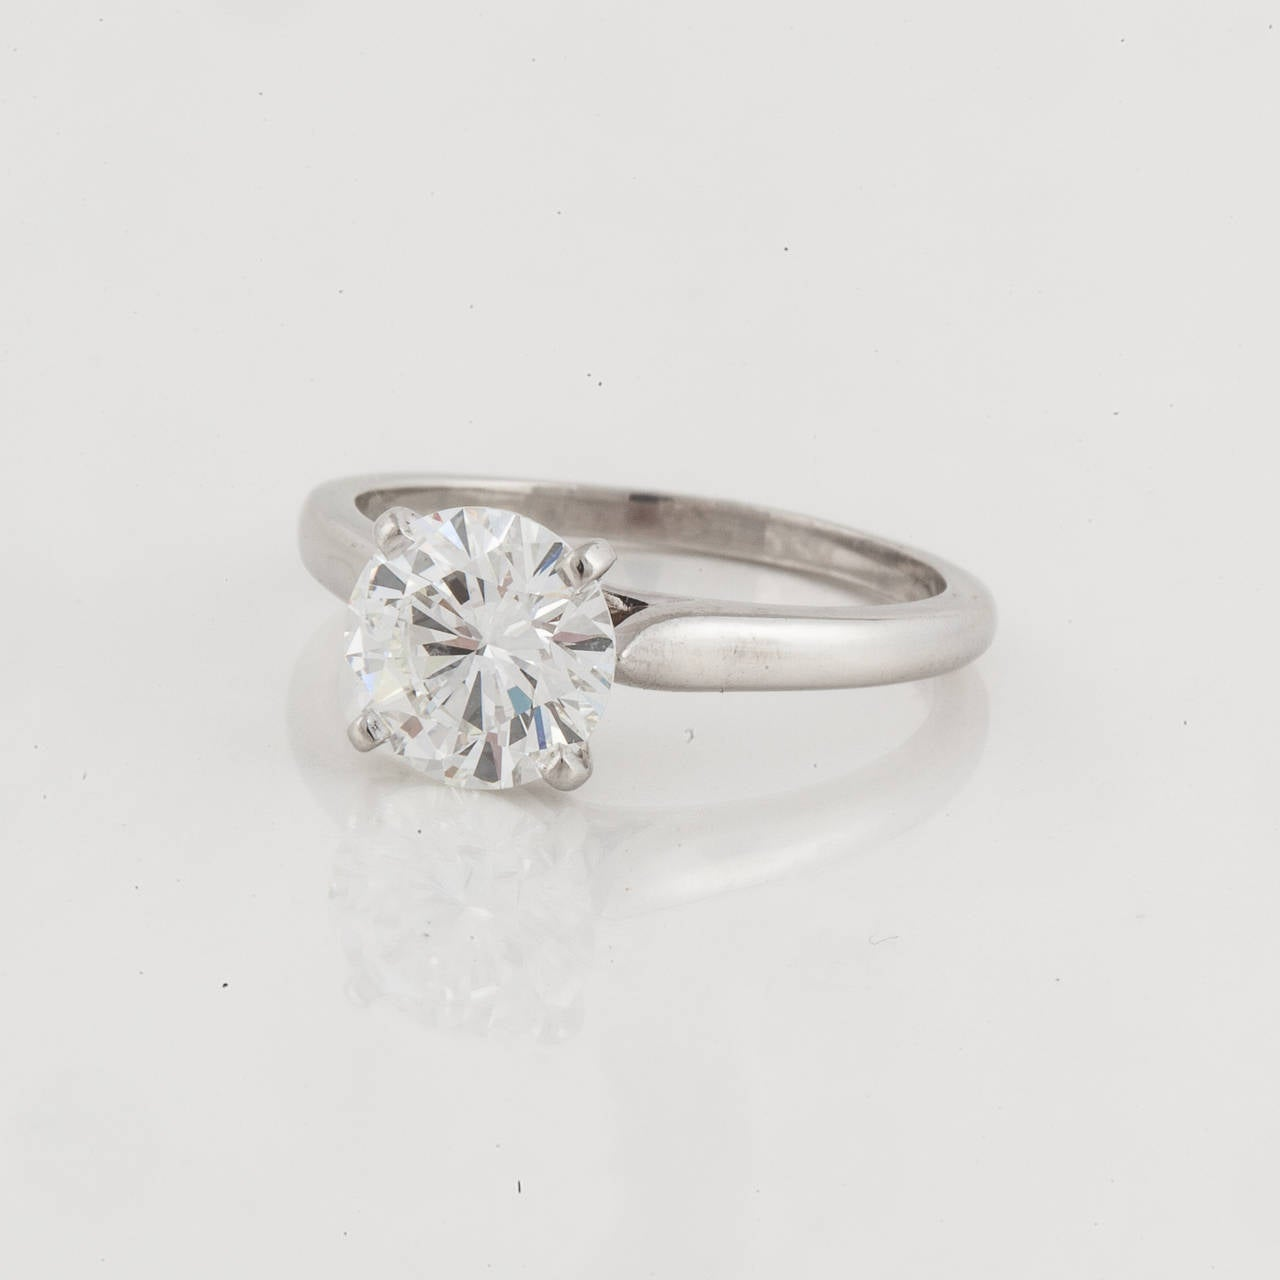 Cartier platinum diamond solitaire ring.  Four prong mounting holds a round brilliant cut diamond weighing 1.67 carats. Color is H and clarity is VS1.  Ring is currently a size 6-1/4 but, of course, can be resized. Engraved on inside of band